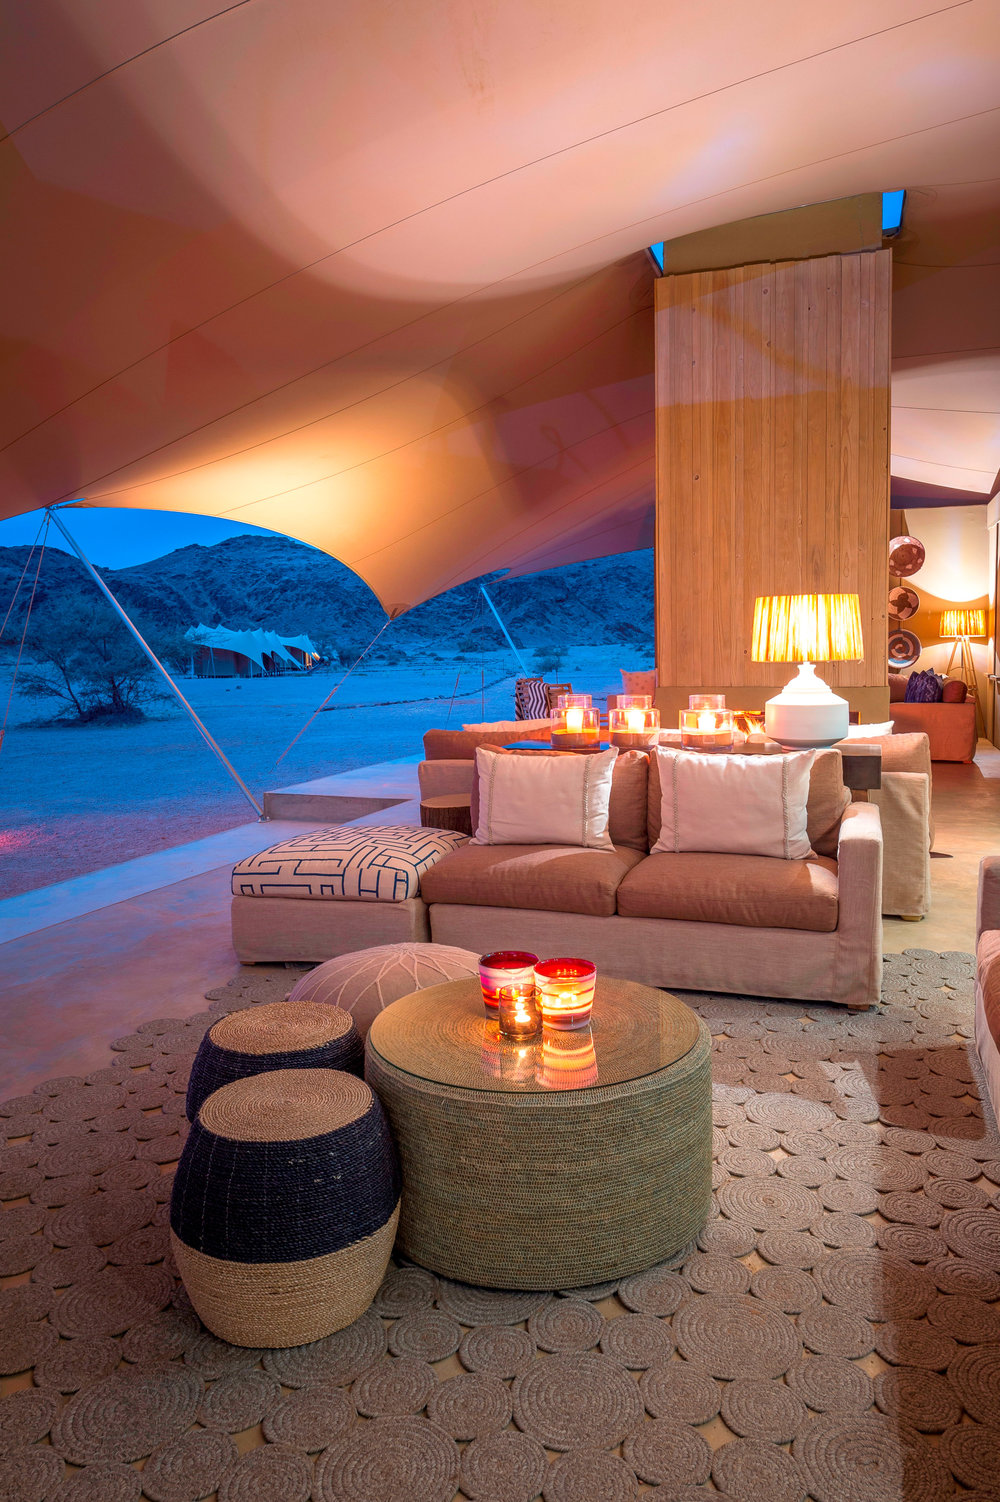 Hoanib Skeleton Coast Camp Lounge Interior In Evening.jpg